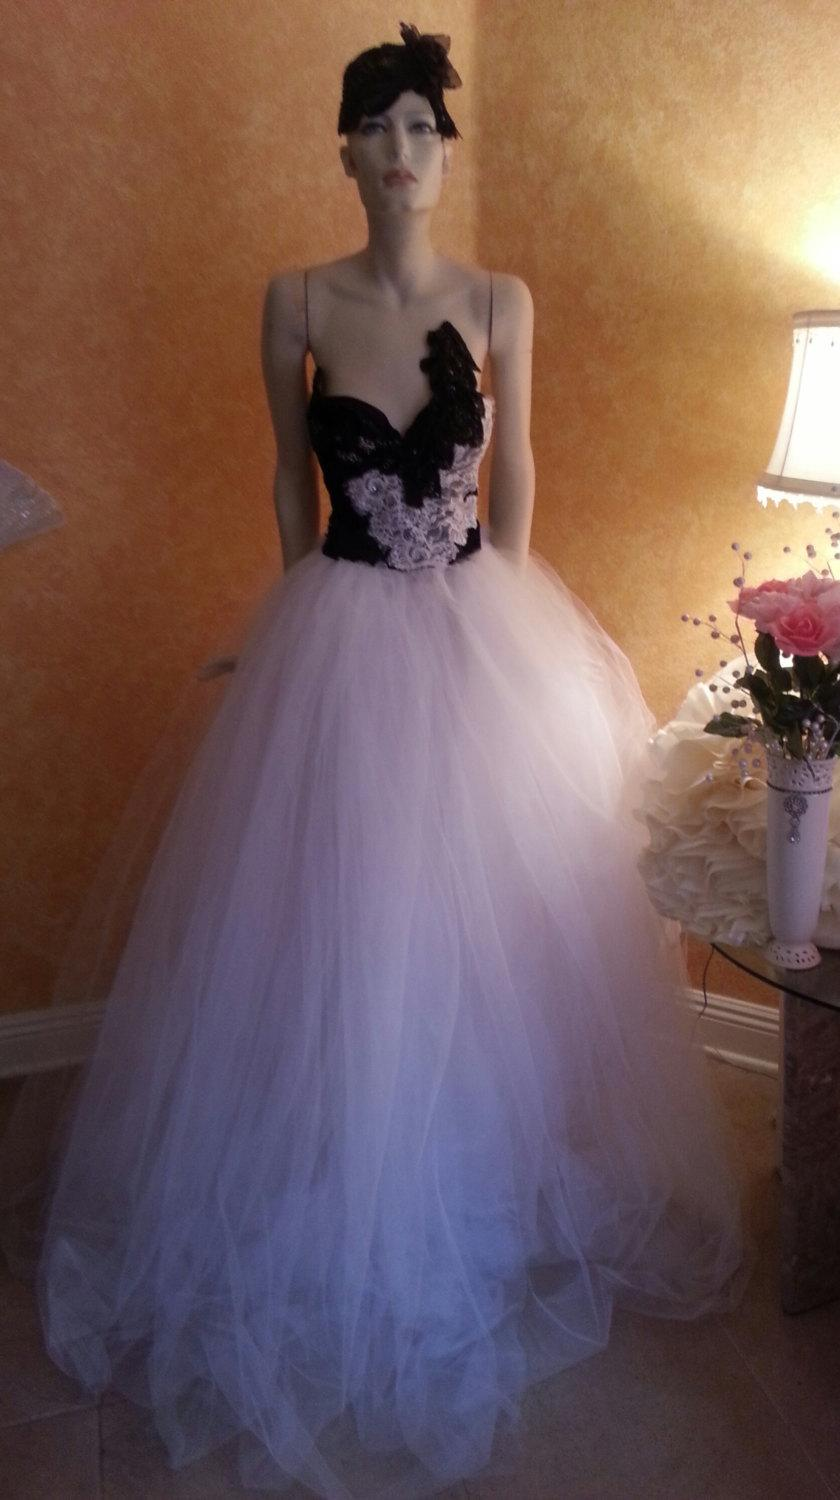 Sample Gown Listing Black White Corset Tulle Crystal Sequin Lace Vintage Victorian Inspired Bridal Wedding Ball